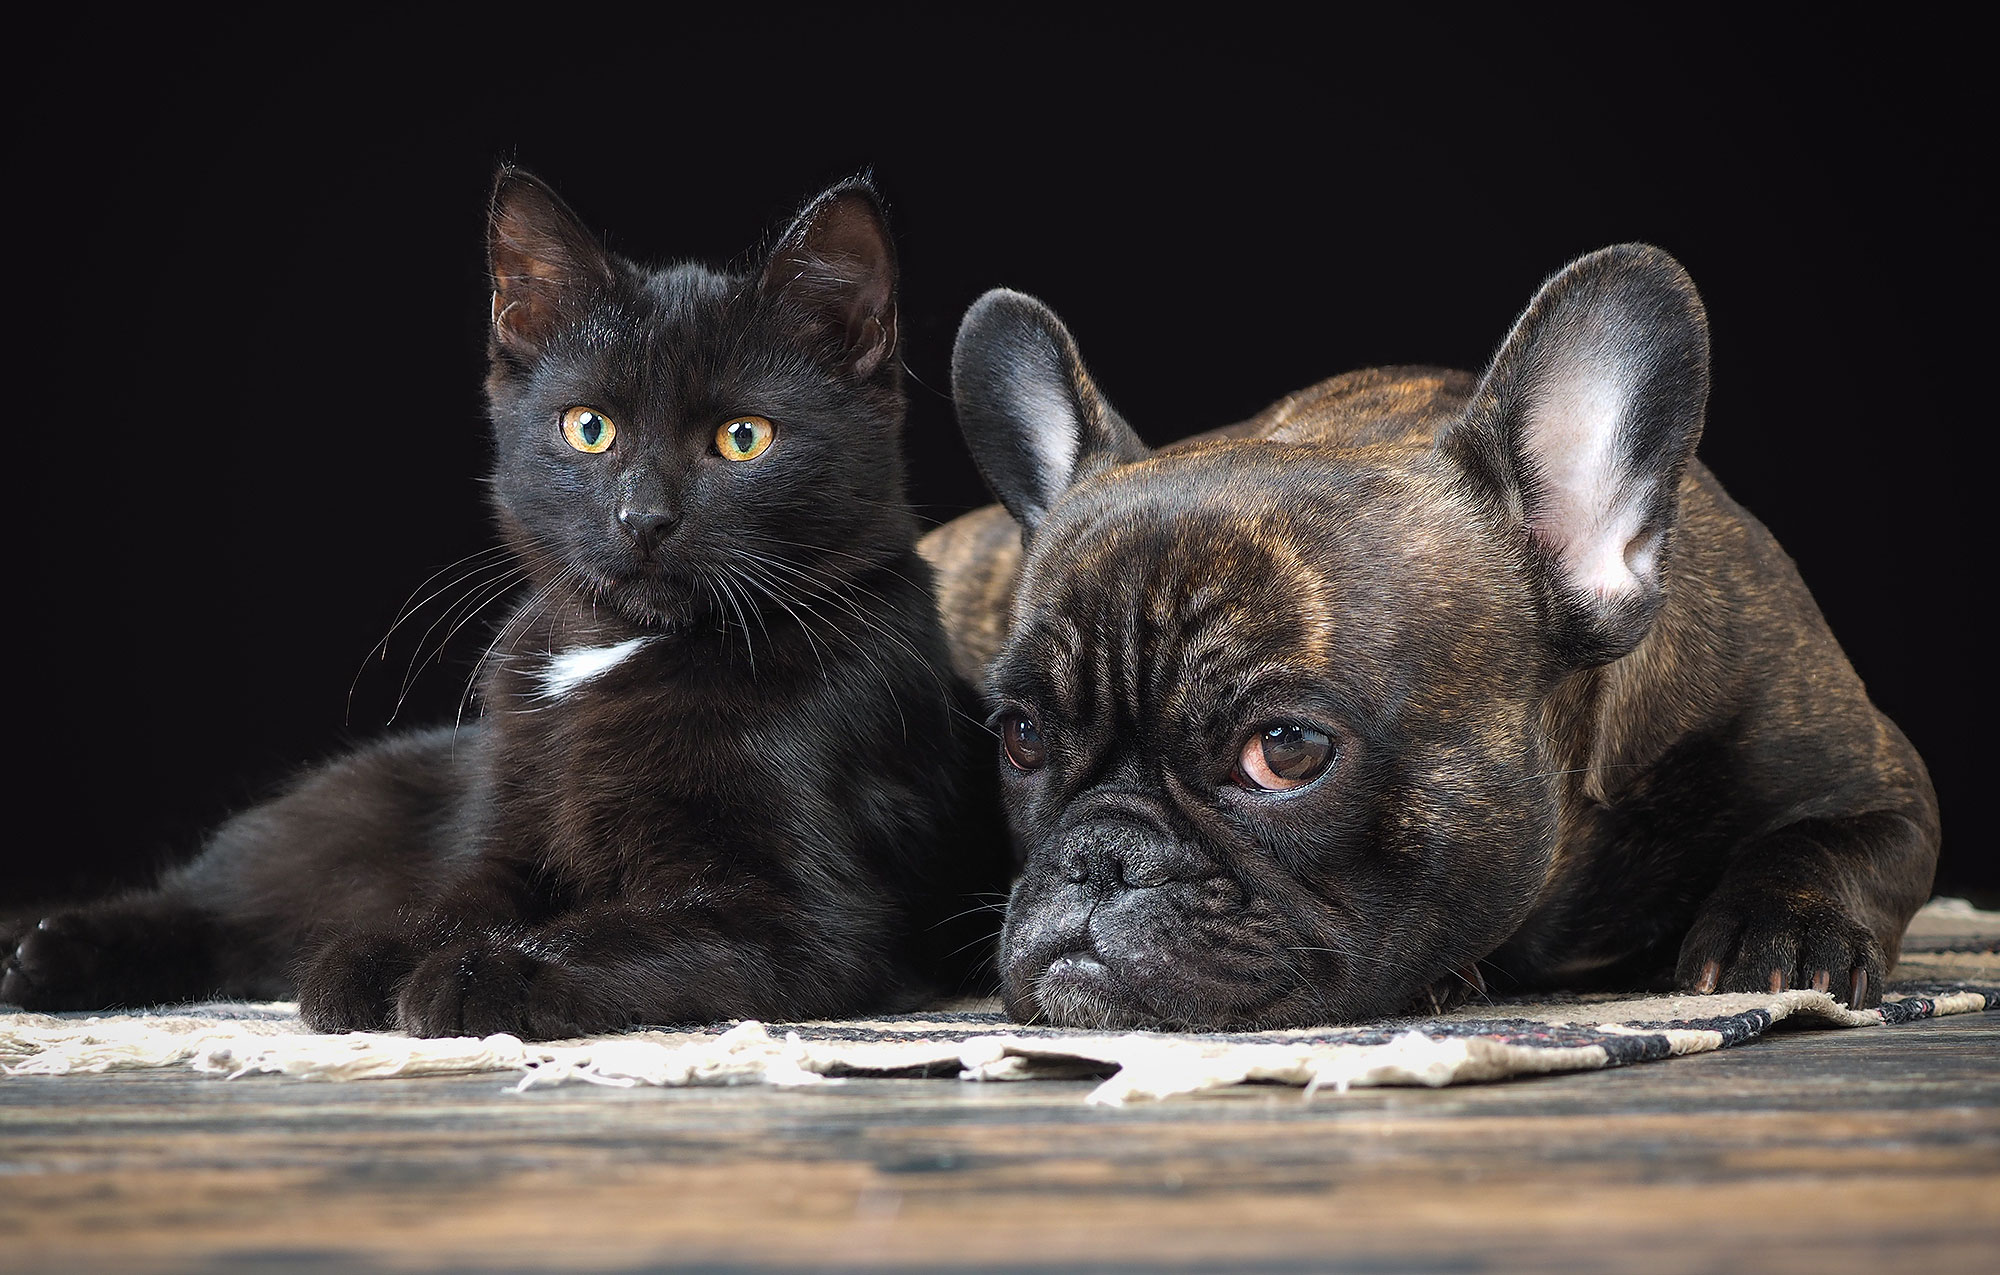 Black kitten and the dog are together